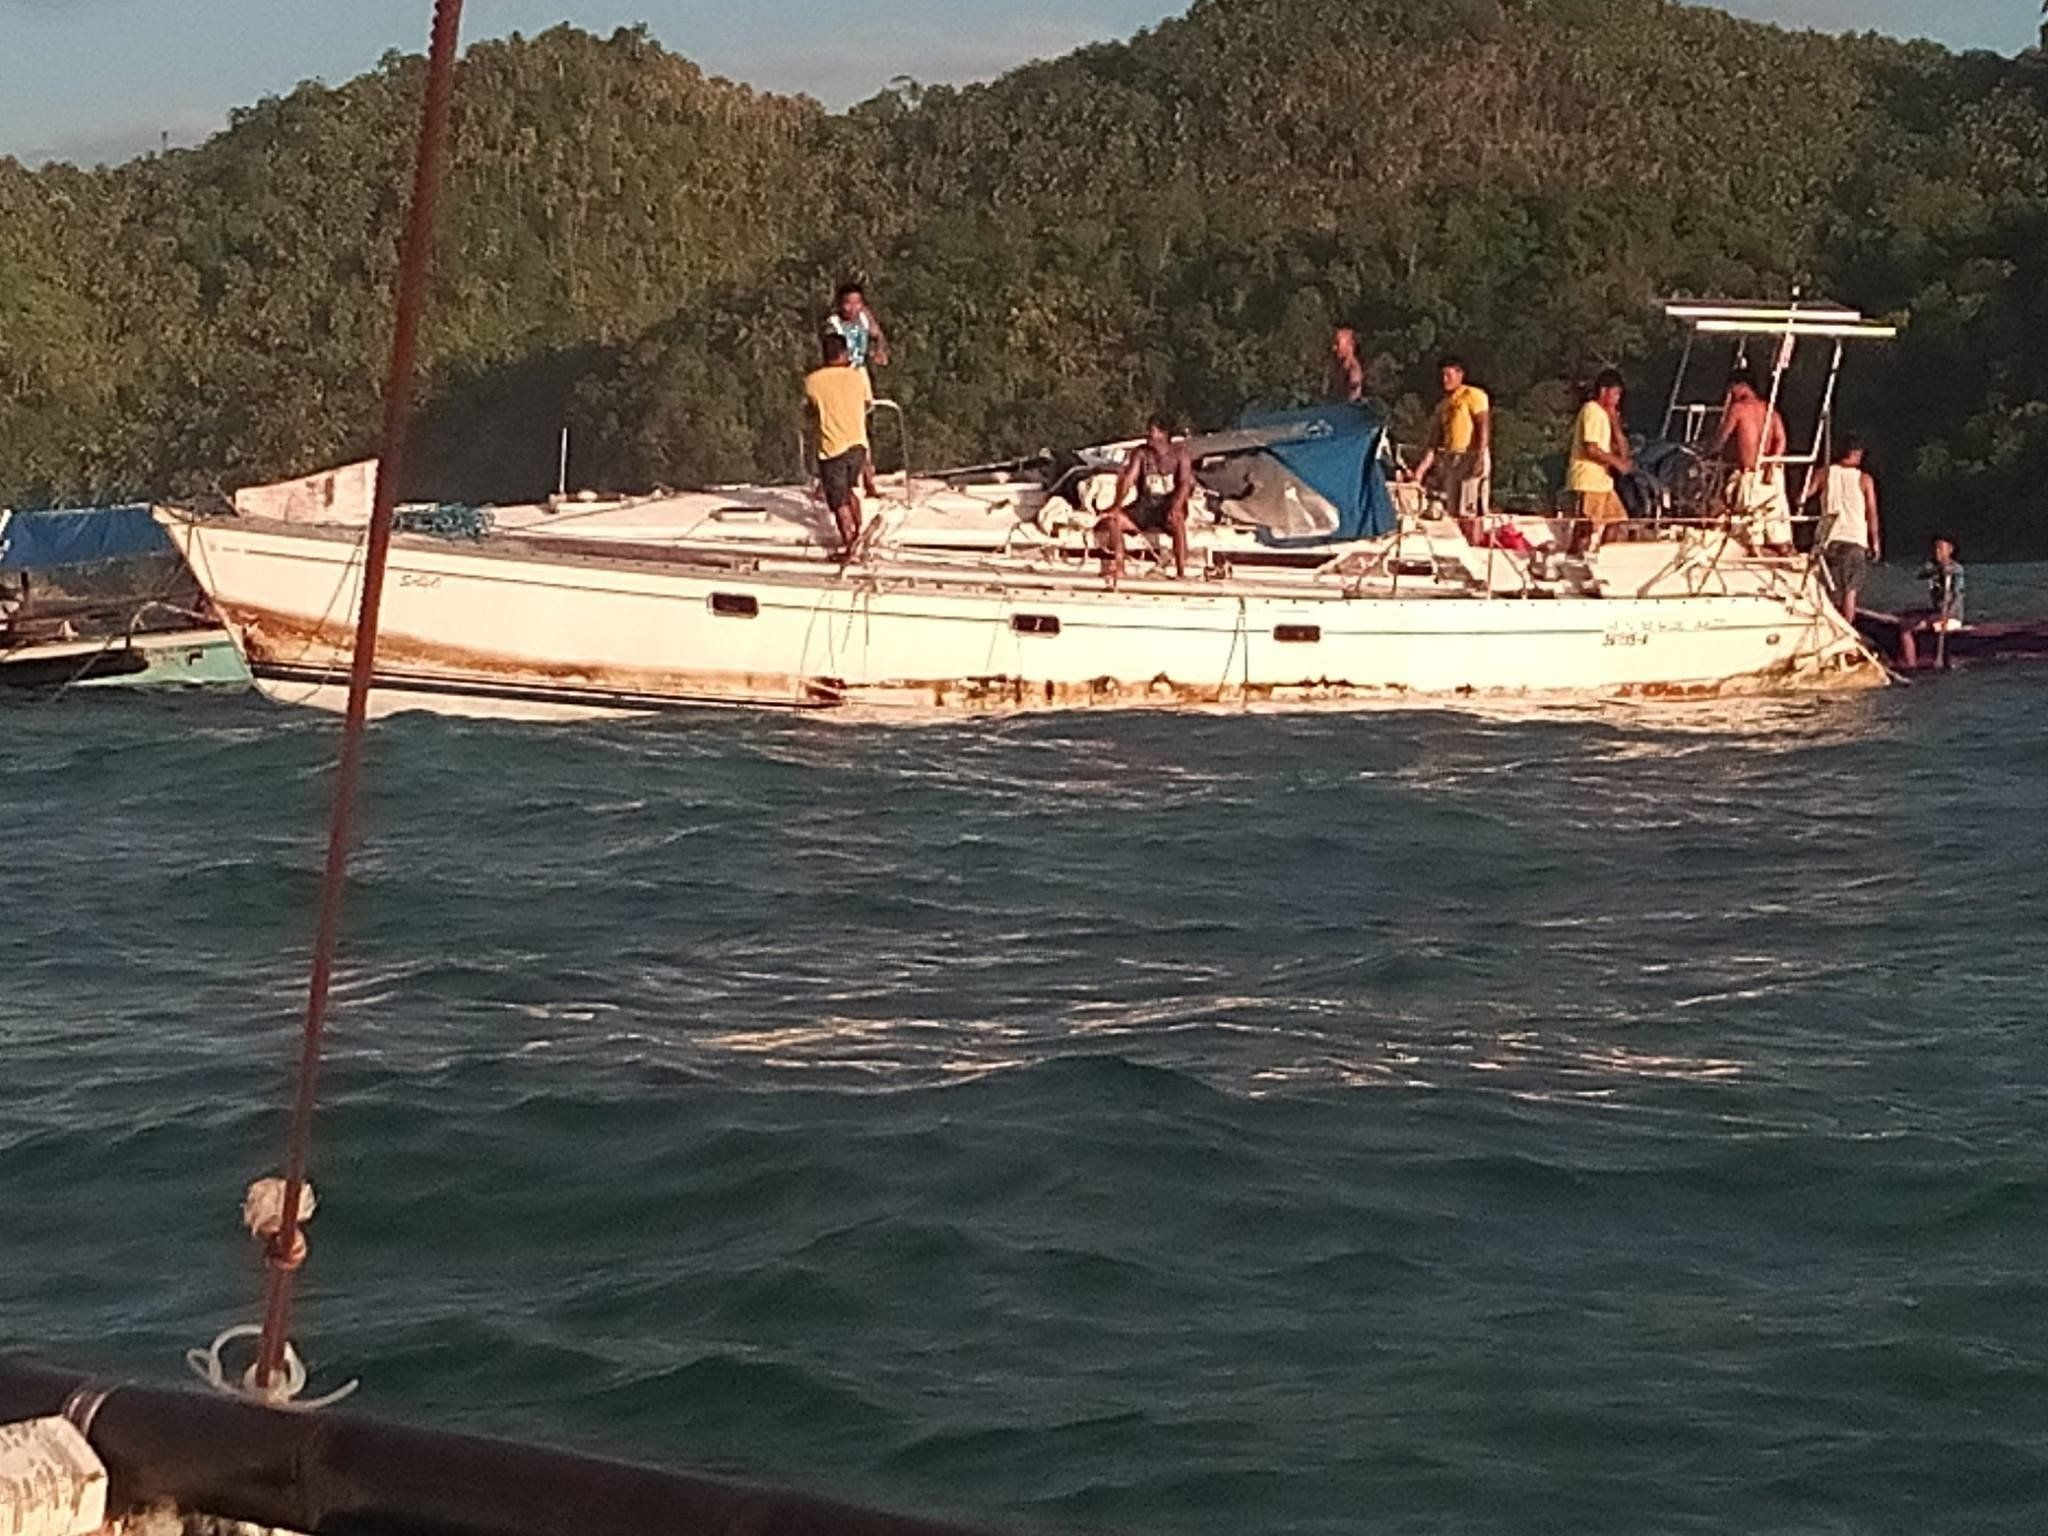 Fishermen reported finding the mummifiedbody of a maninside this drifting yacht.